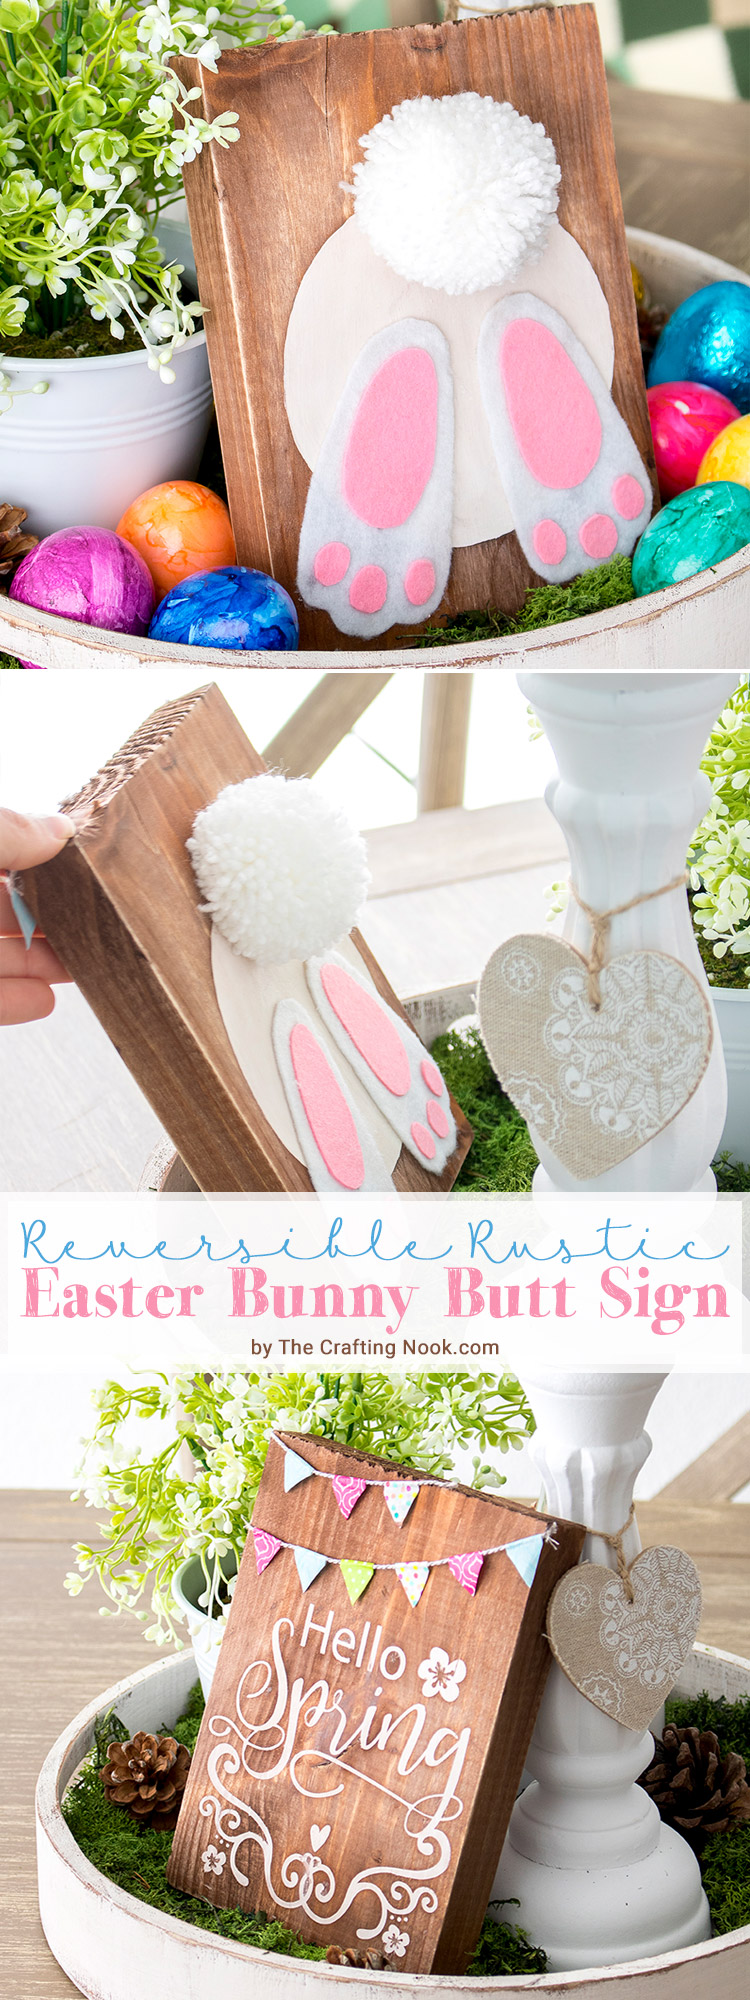 Fun DIY Reversible Rustic Easter Bunny Butt Sign